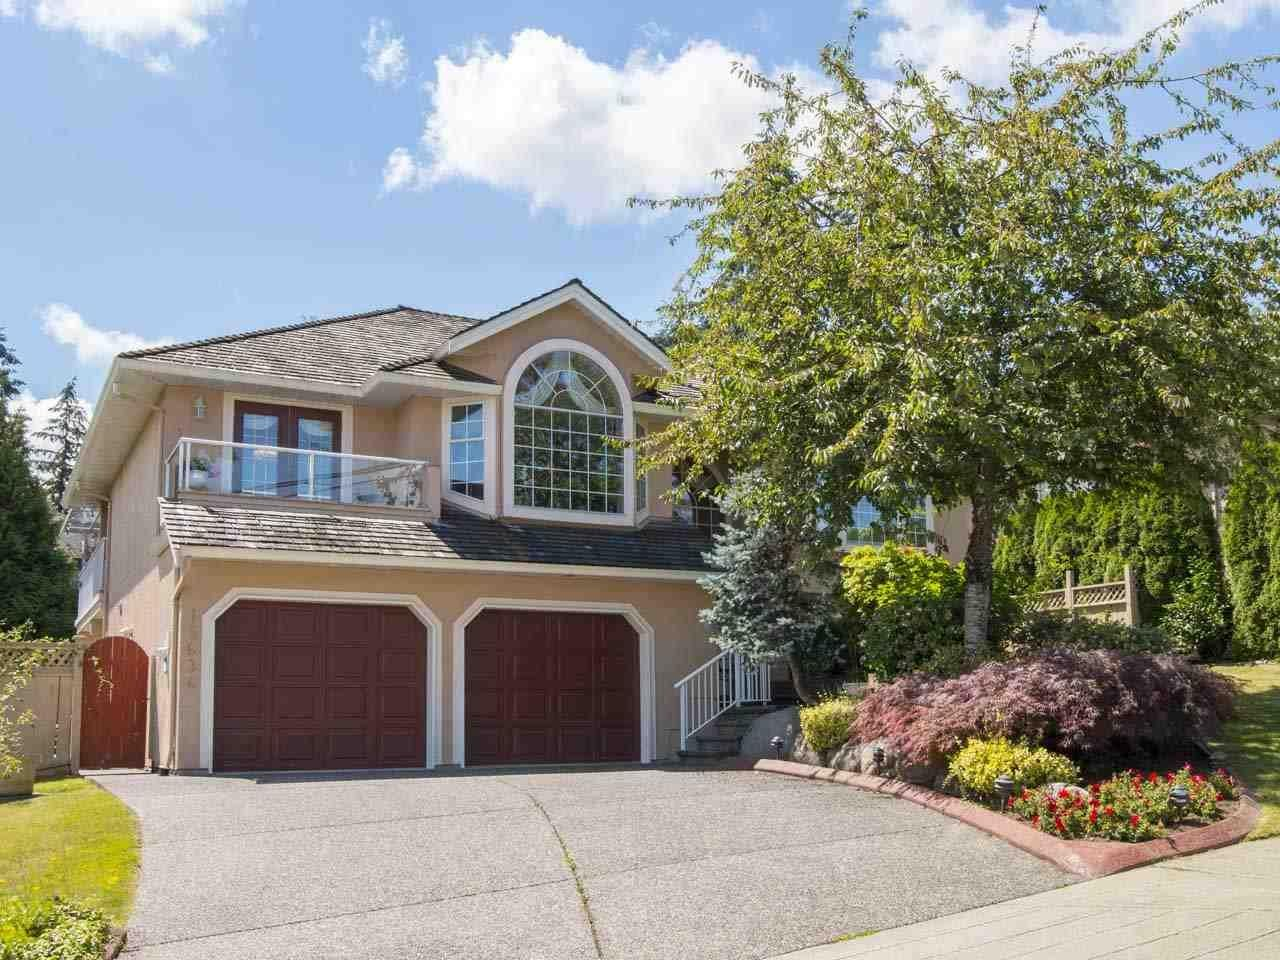 R2093318 - 16636 108 AVENUE, Fraser Heights, Surrey, BC - House/Single Family